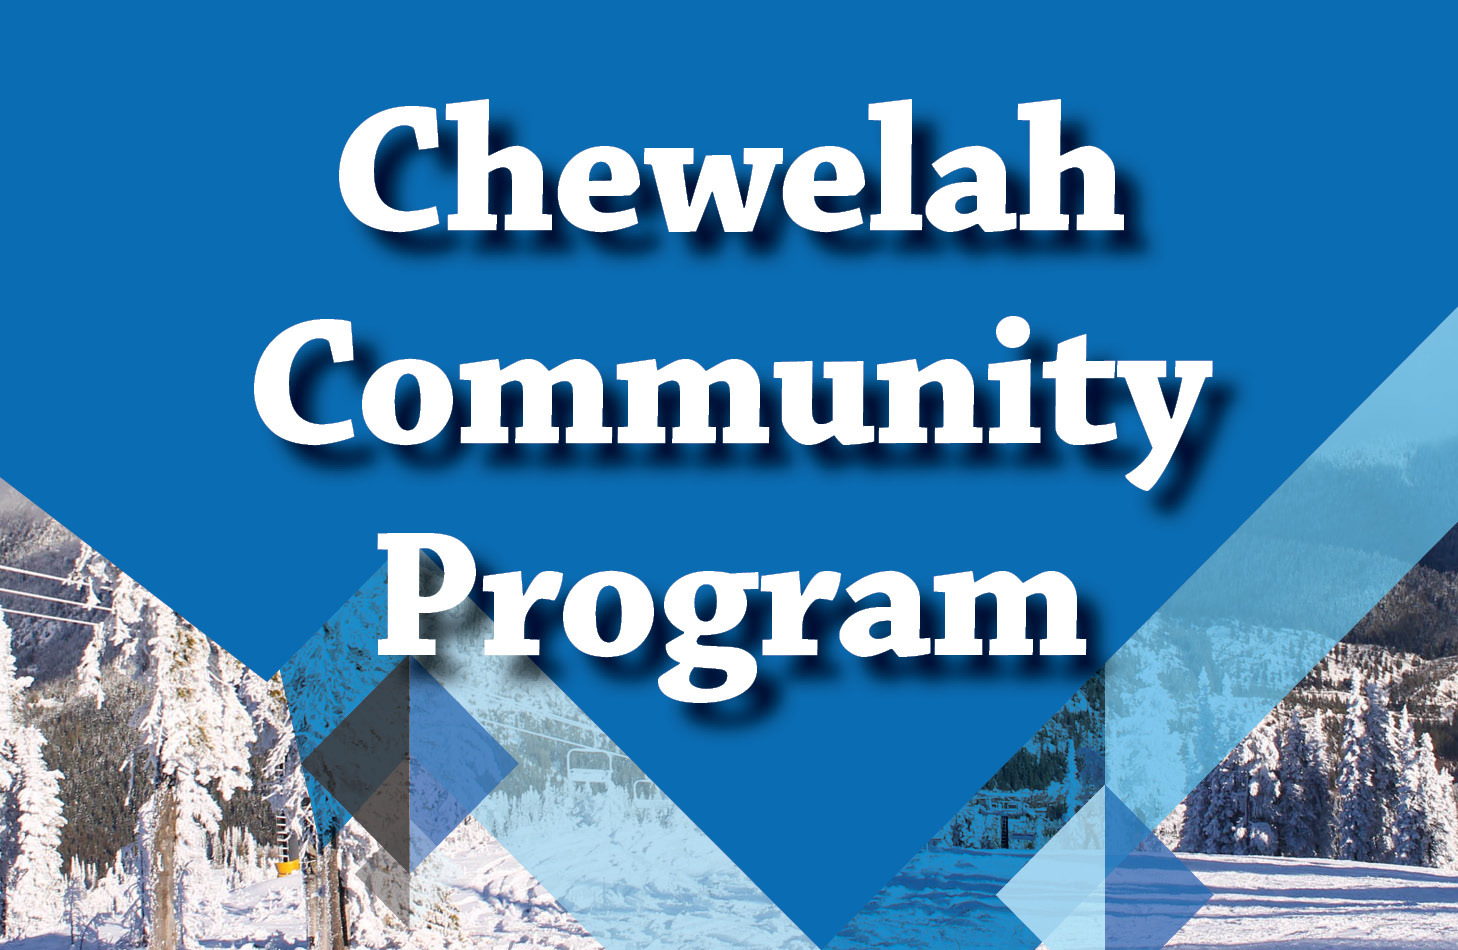 Chewelah Community Program